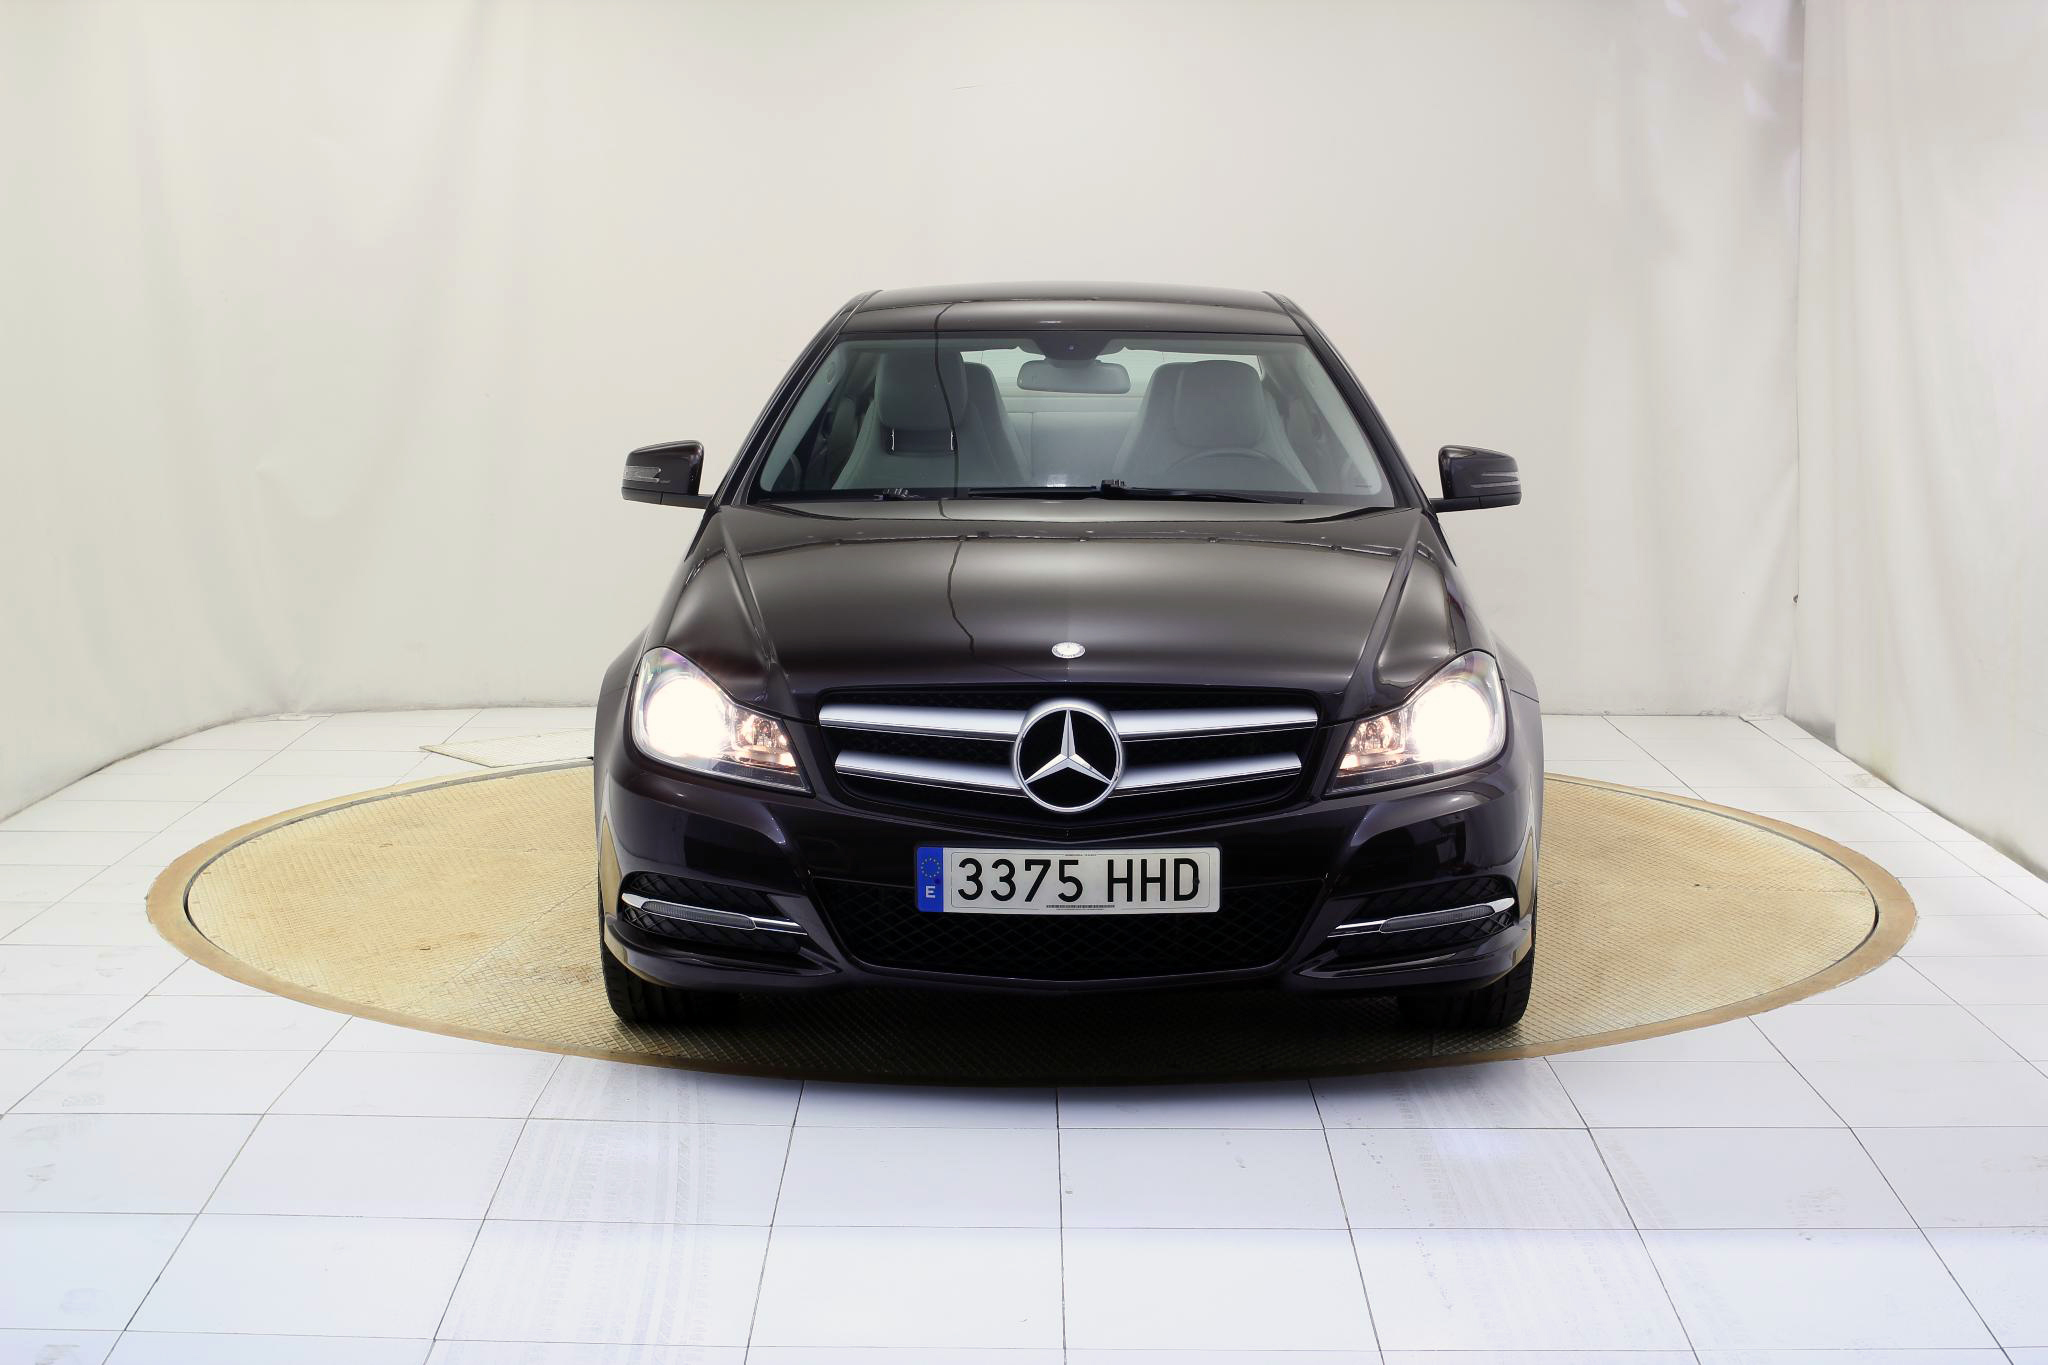 Mercedes-Benz Clase C CLASE C COUPE 350 BLUE EFFICIENCY AUTO imagen 2